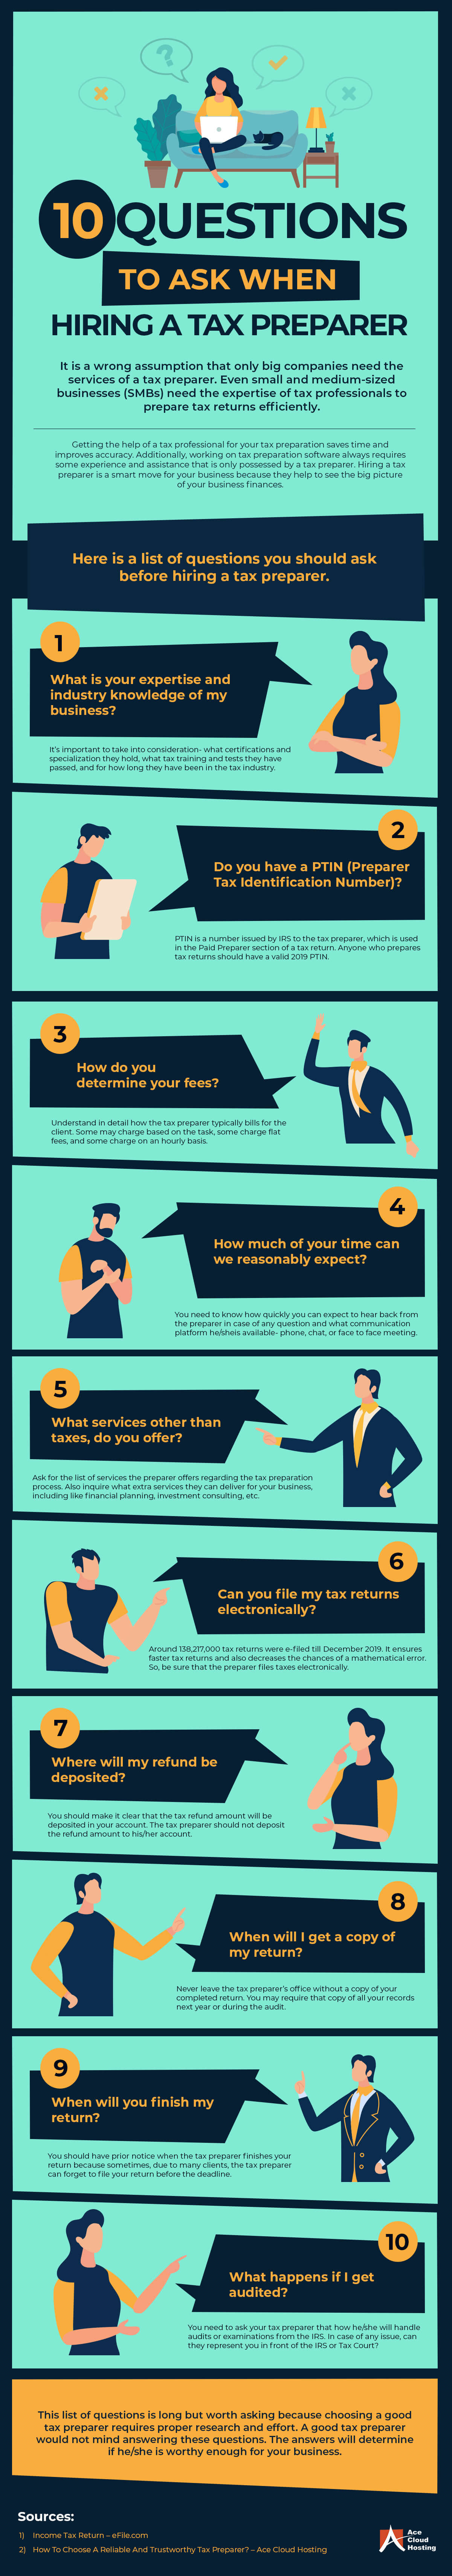 infographic-ask-question-hiring-tax-preparer-cpa